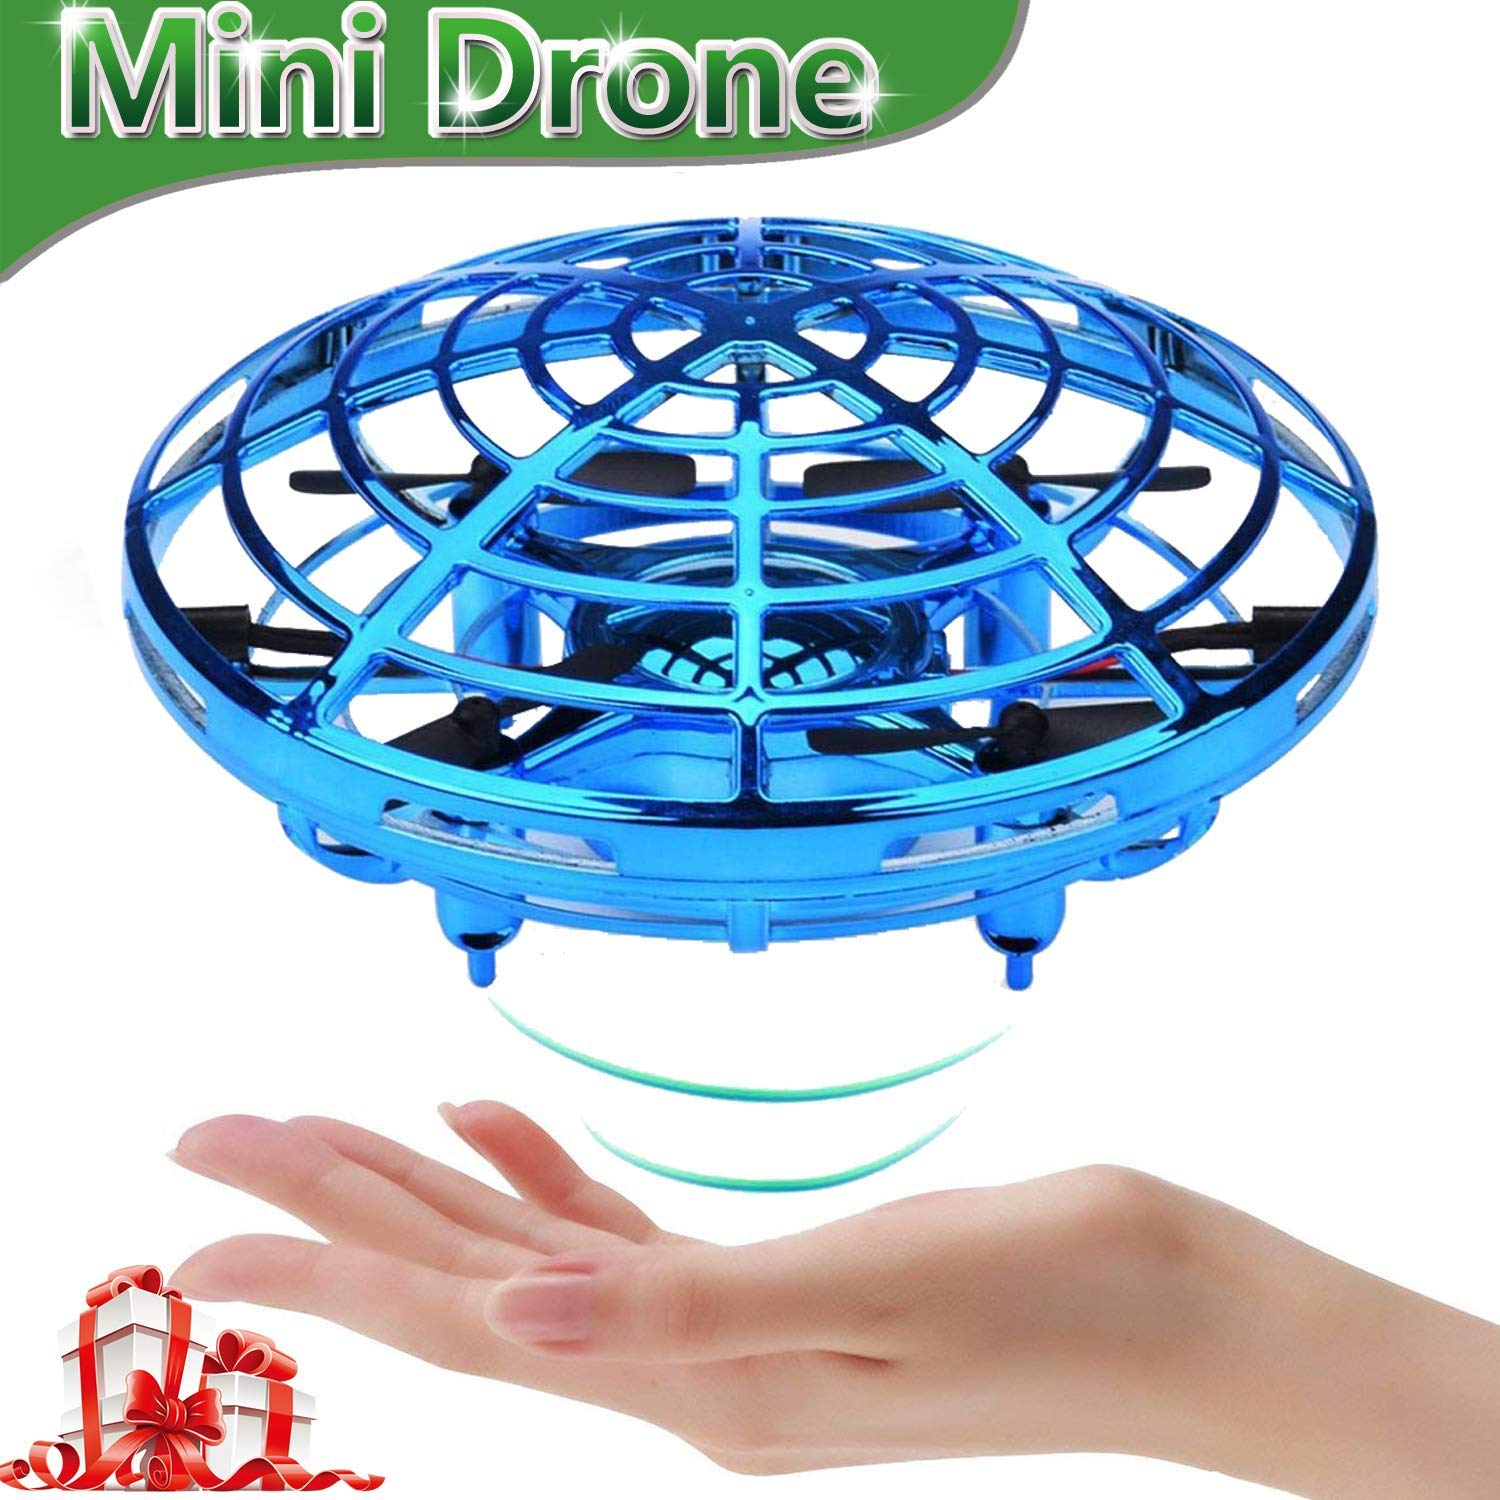 bluee WANGKM Mini Drone RC Toys for Kids, Flying Ball Hand Remote Controlled Quadcopter LightUp Flying Toys 360° redating Magic Floating Helicopter Toys Valentine Day New Year Birthday